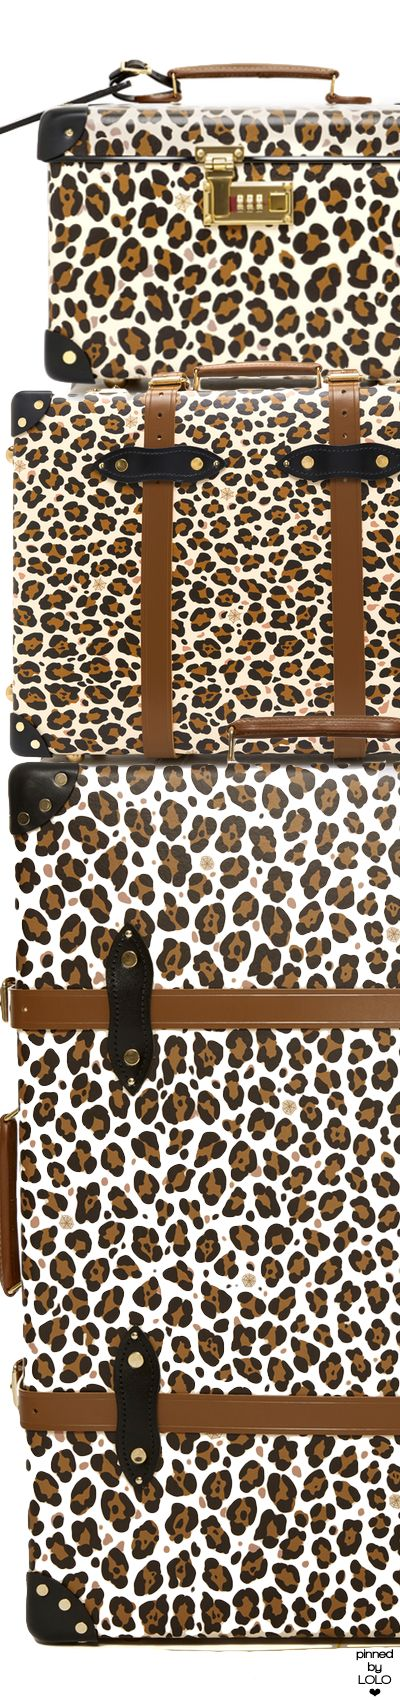 Charlotte Olympia x Globe-Trotter Leopard-Print Leather Luggage